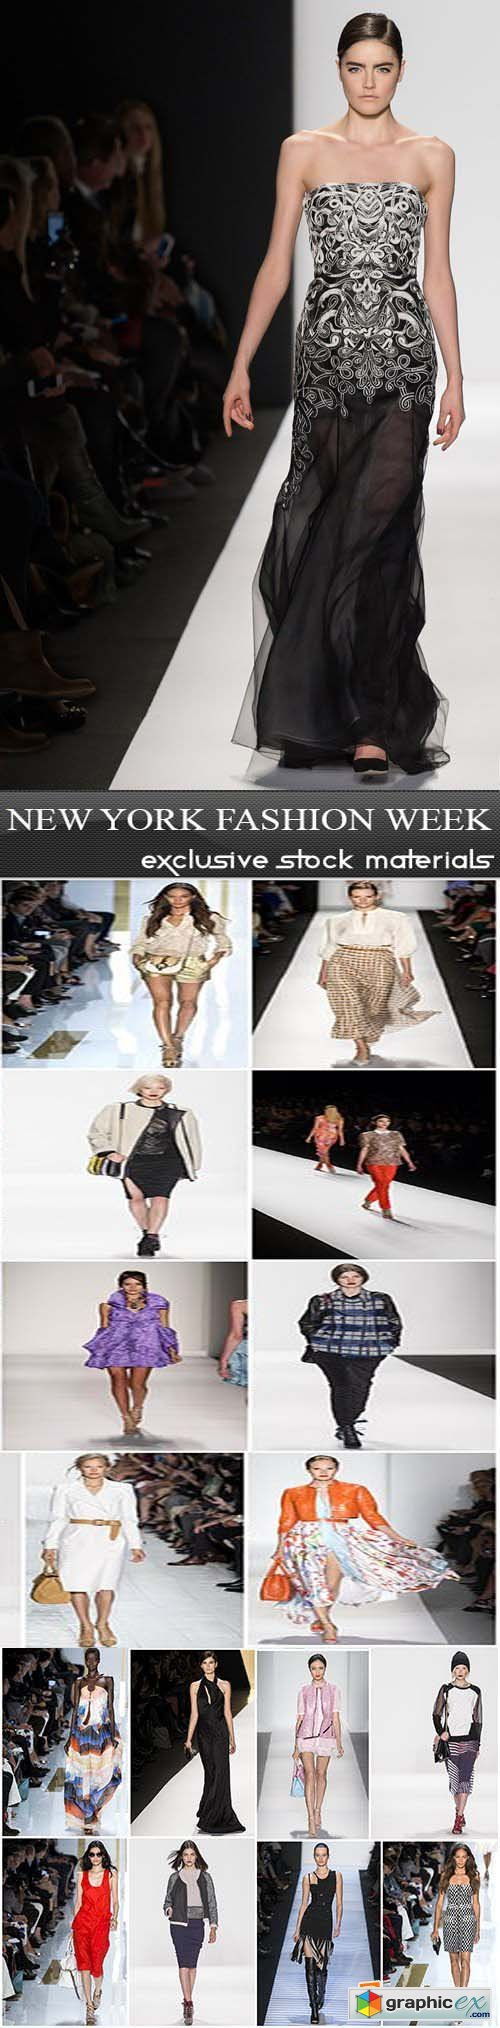 7th on the Sixth - New York Fashion Week, 25xUHQ JPEG